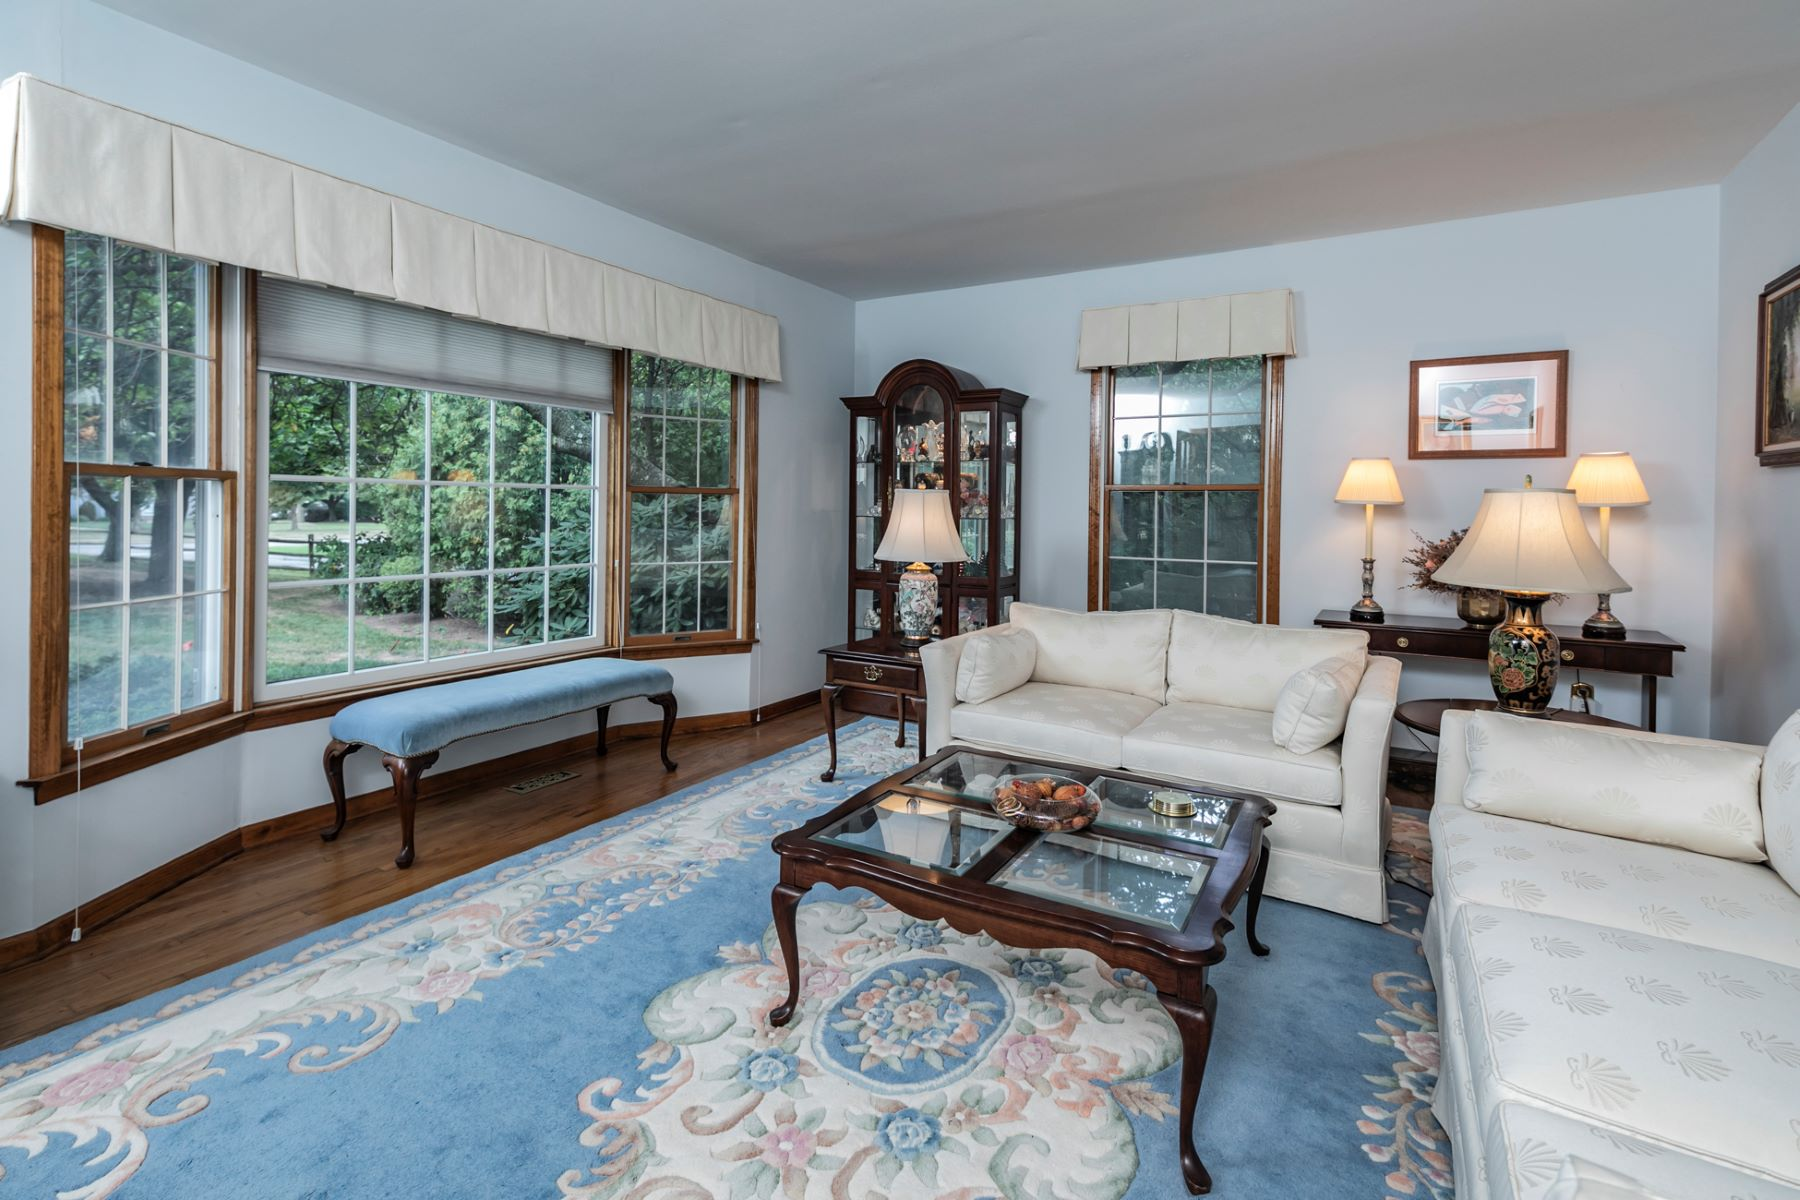 Additional photo for property listing at Add Your Final Touches - Cul-de sac Location 41 Wiggins Lane, Belle Mead, New Jersey 08502 United States